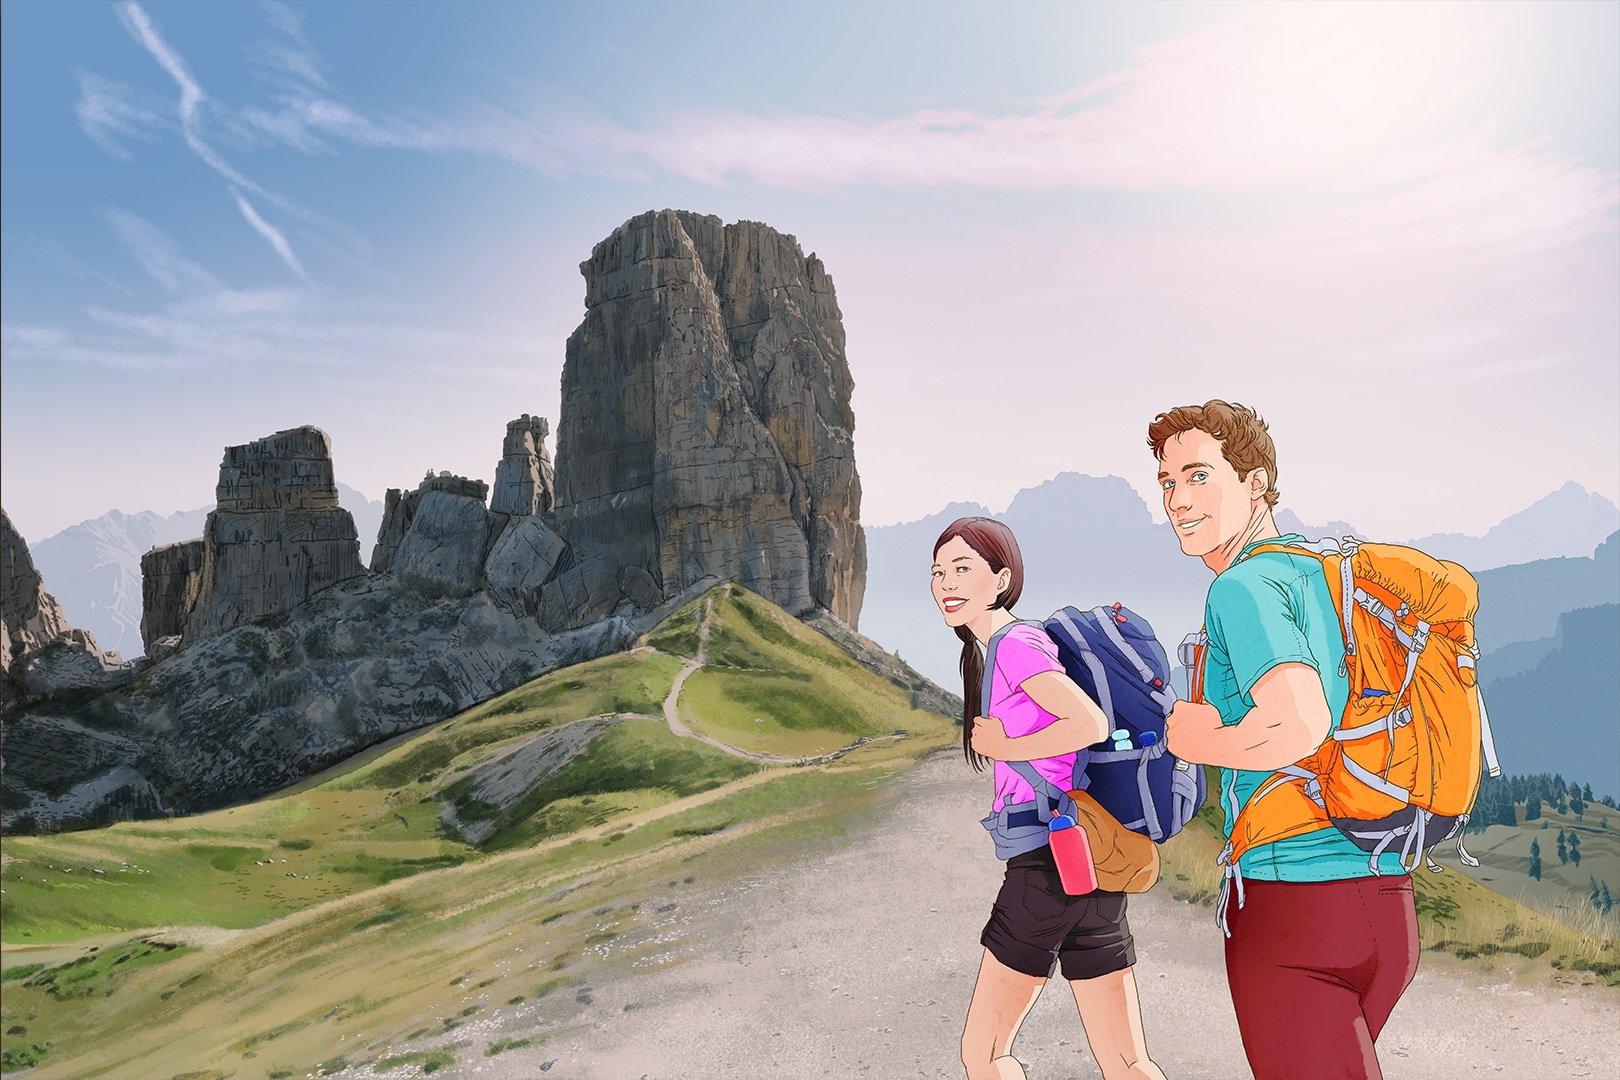 man and woman carrying hiking backpacks near rock